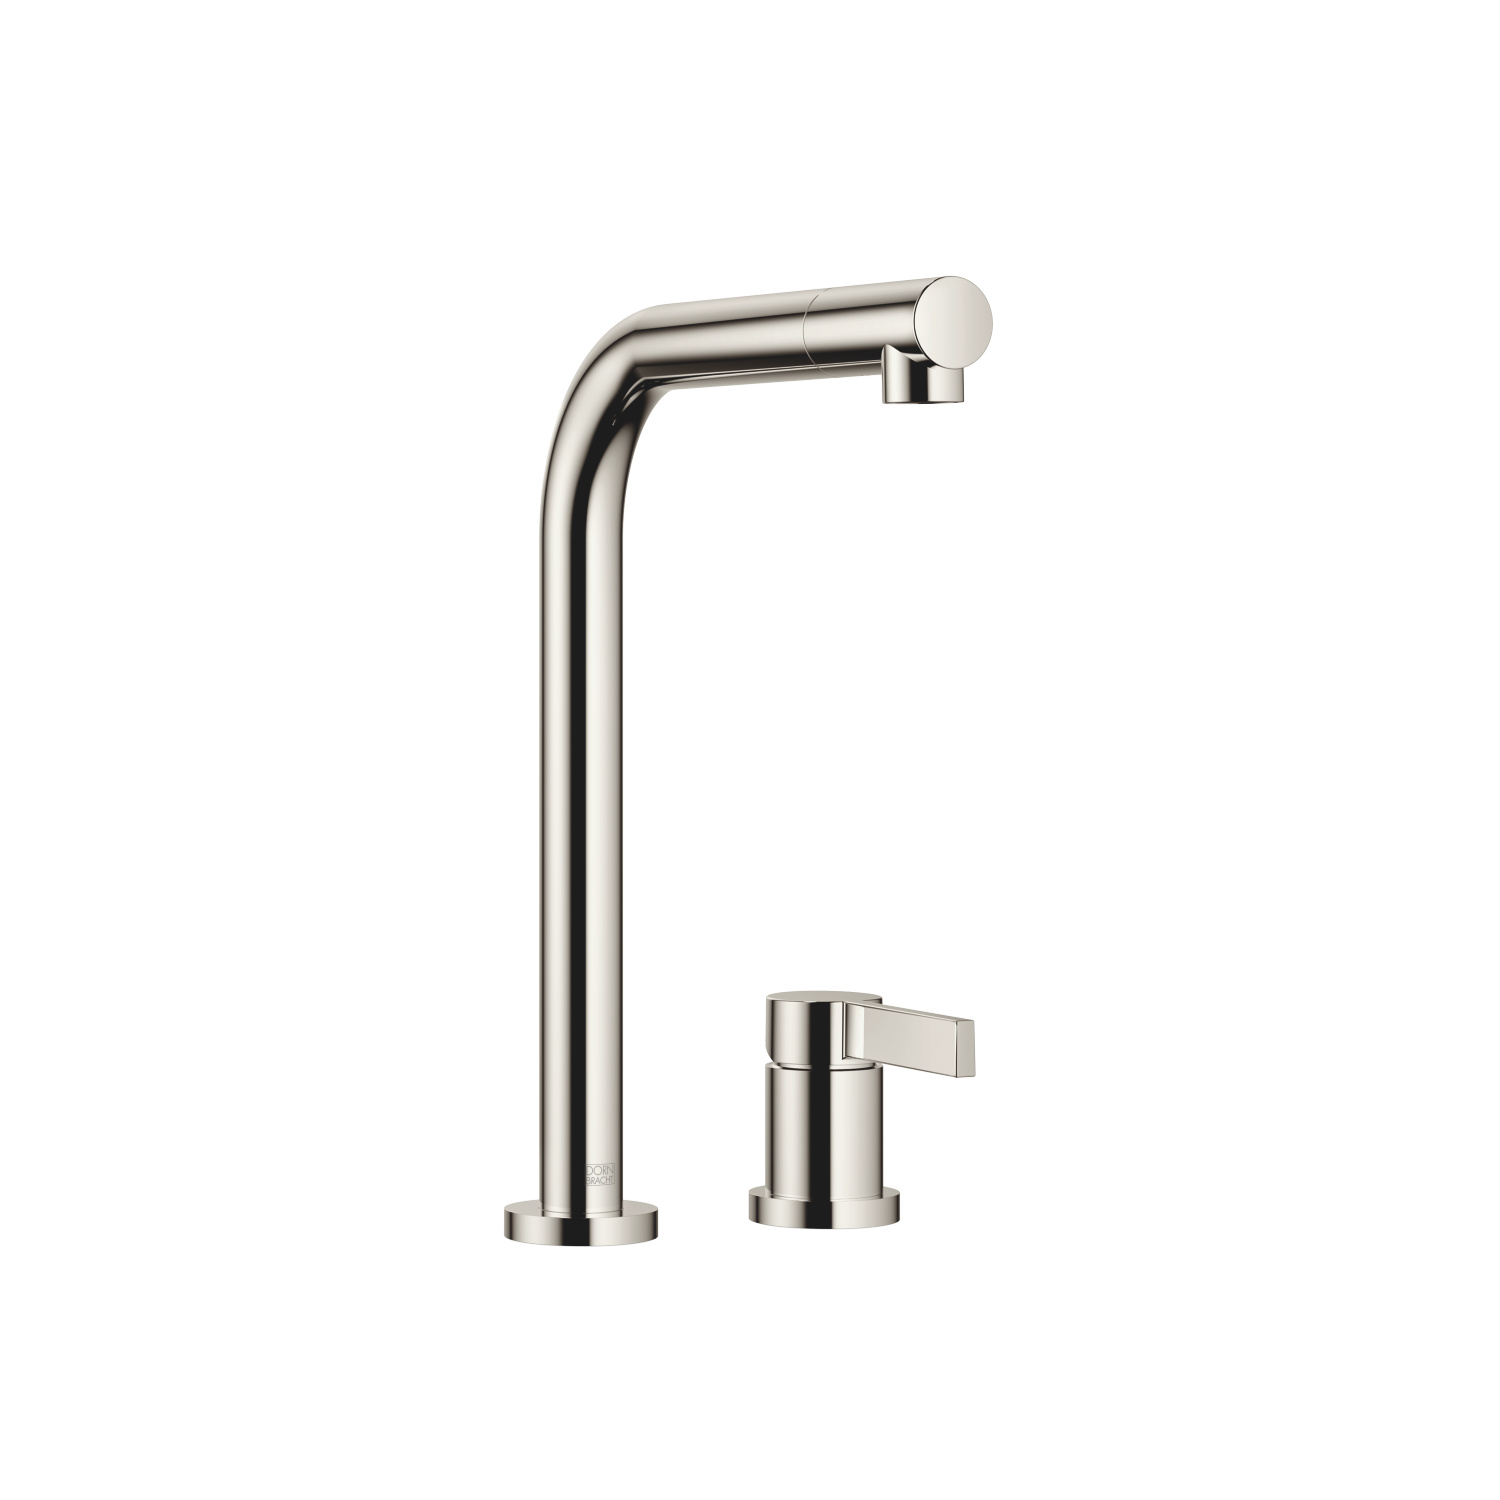 Two-hole mixer with individual rosettes - platinum